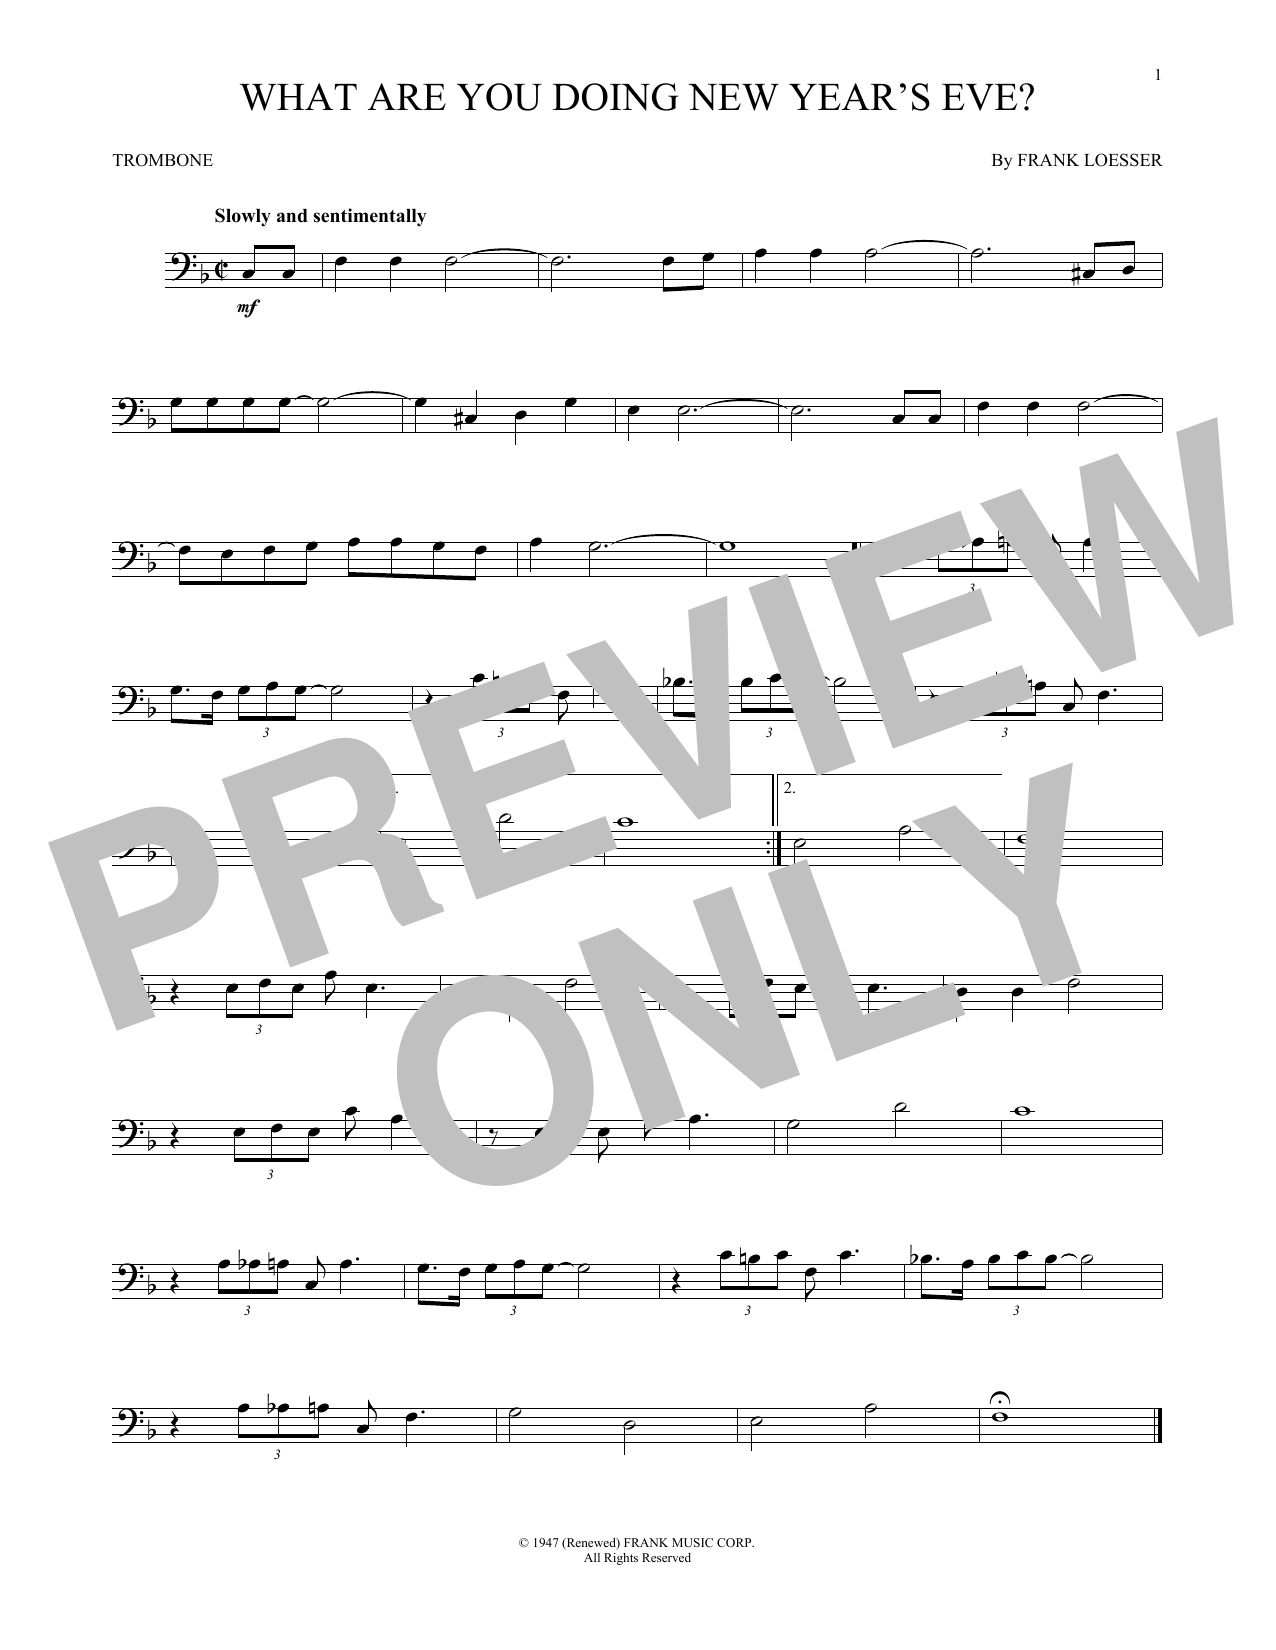 What Are You Doing New Year's Eve? (Trombone Solo)